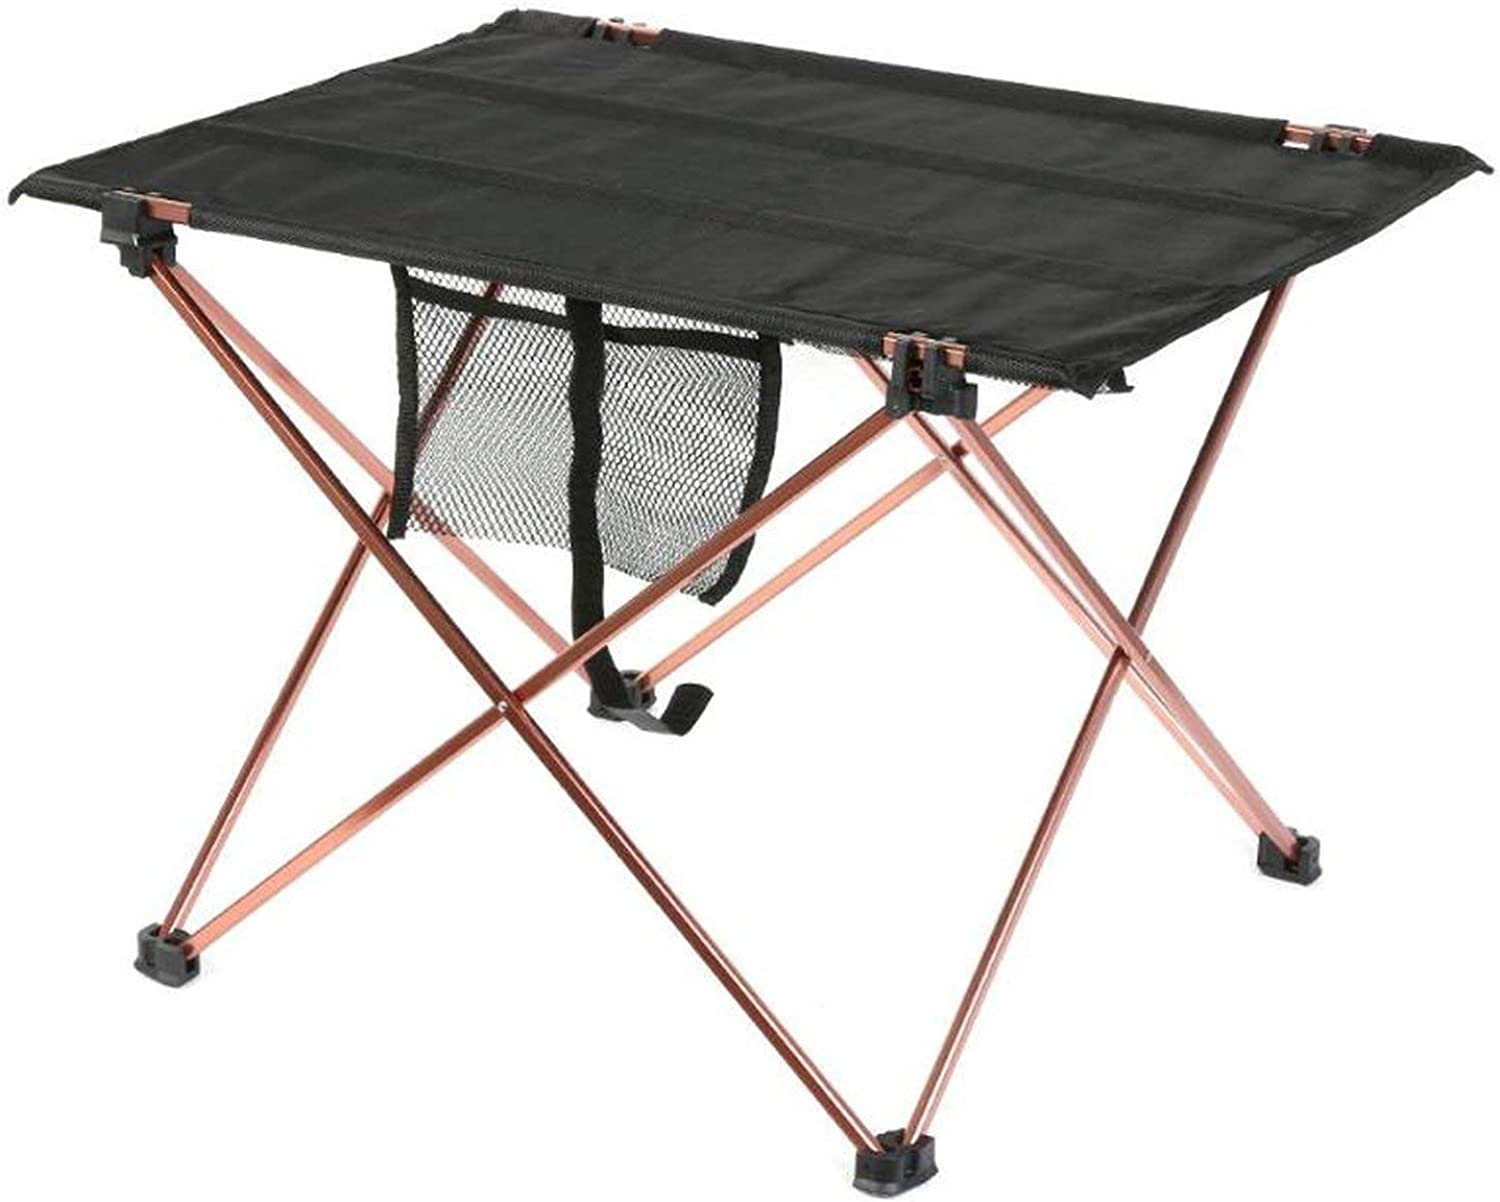 Aluminum Alloy Oxford Cloth Table Ultralight Portable Folding Table Camping Picnic Table Barbecue Fishing Chairs